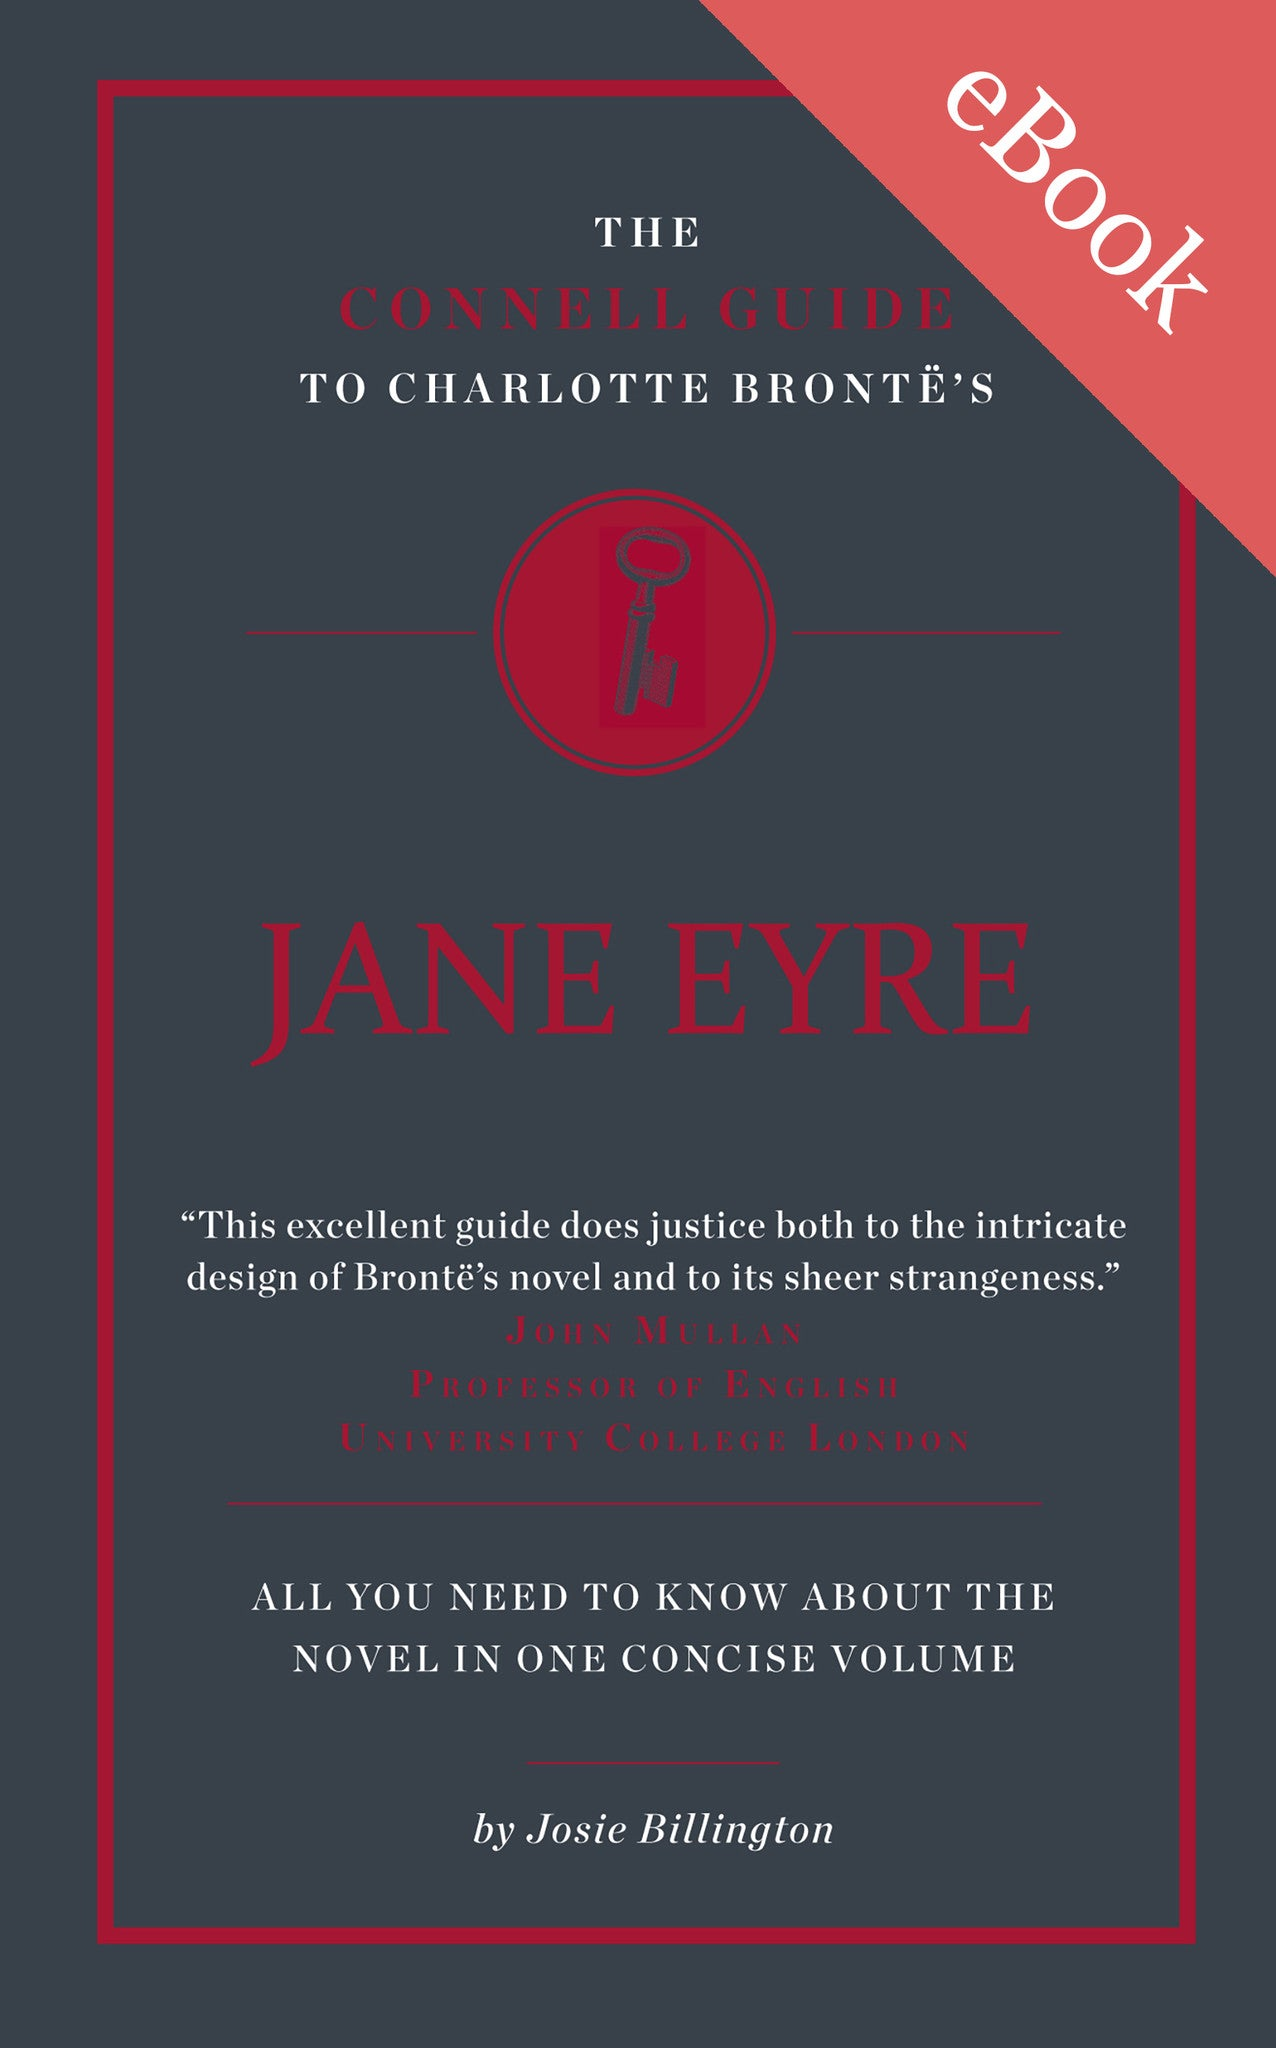 an analysis of violence in jane eyre by charlotte bronte Charlotte brontë wrote not one but two masterpieces most readers know jane eyre even non-readers feel they know it, because they have seen a film version, or just because it is a part of our.